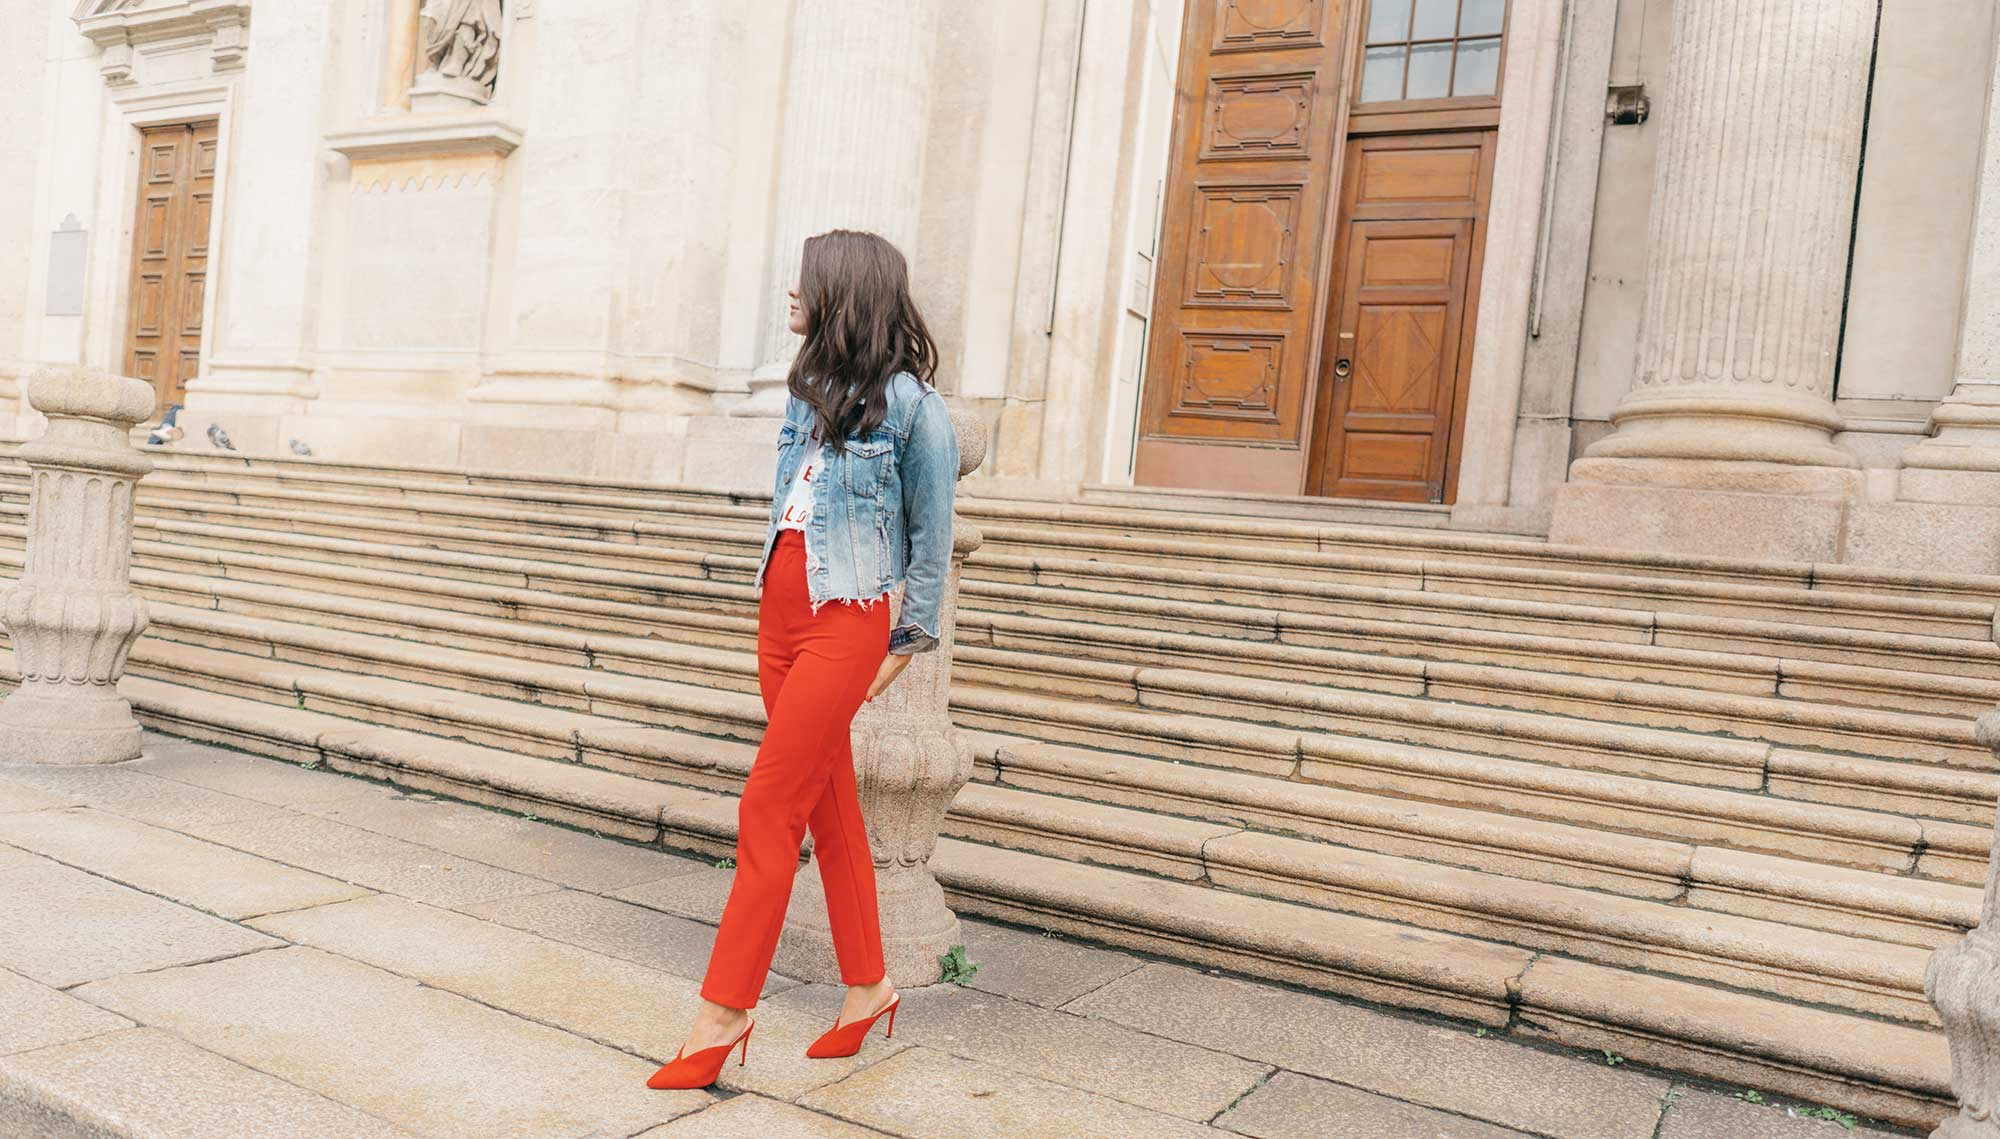 Red-Skinny-Pants,-All-You-Need-Is-Love'-Slogan-T-Shirt,-Cara-Cropped-Denim-Jacket,-Milan-Spring-Outfit11.jpg